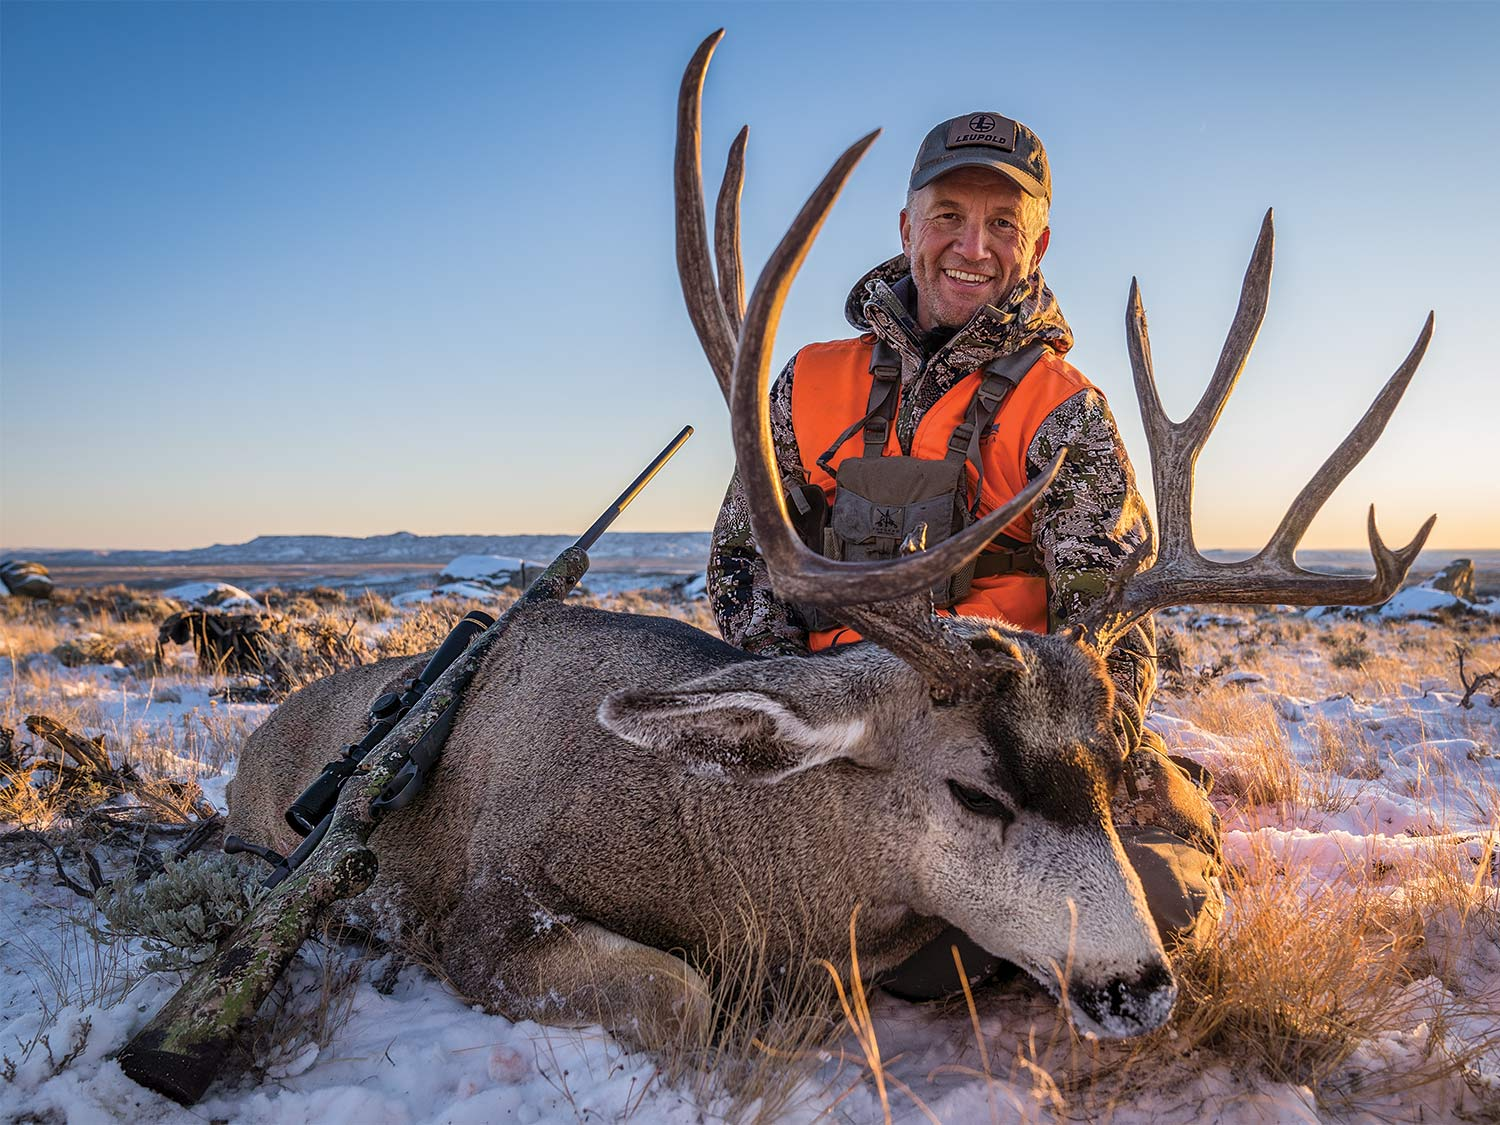 A hunter smiles and kneels behind a large mule deer in the snow.